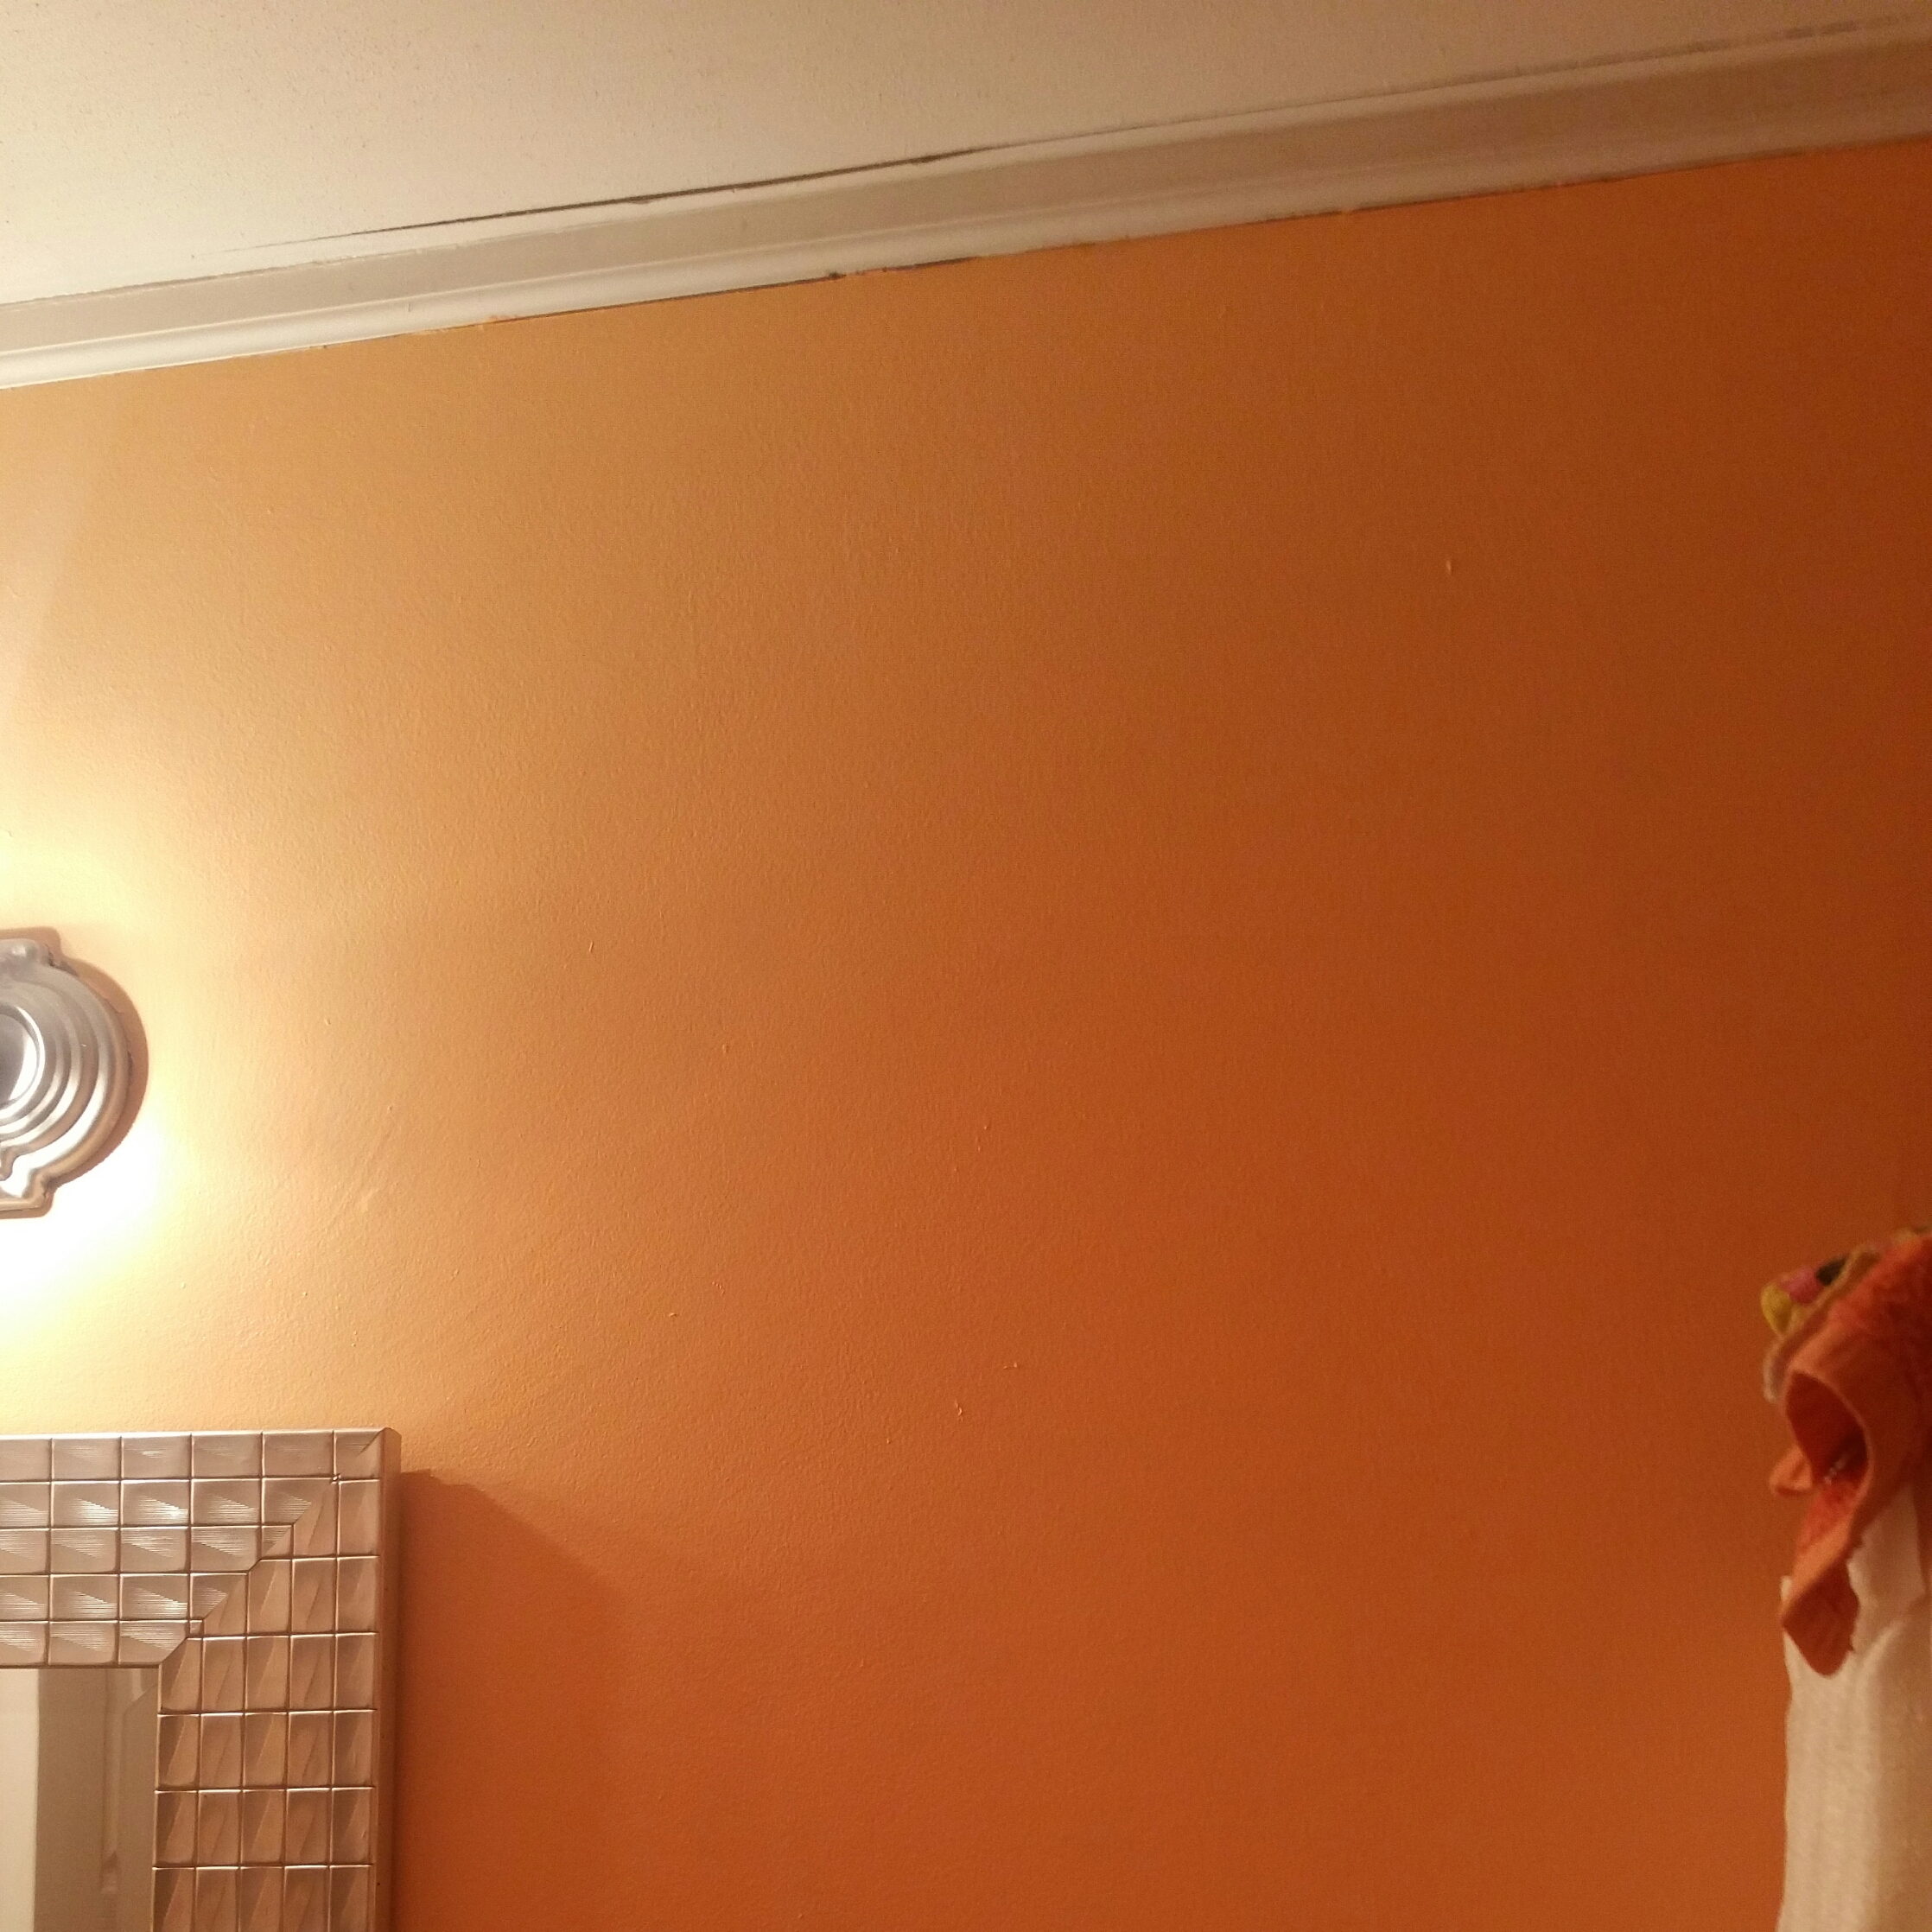 How To Fix Bathroom Ceiling Paint Peeling: Crown Molding Separating From Ceiling